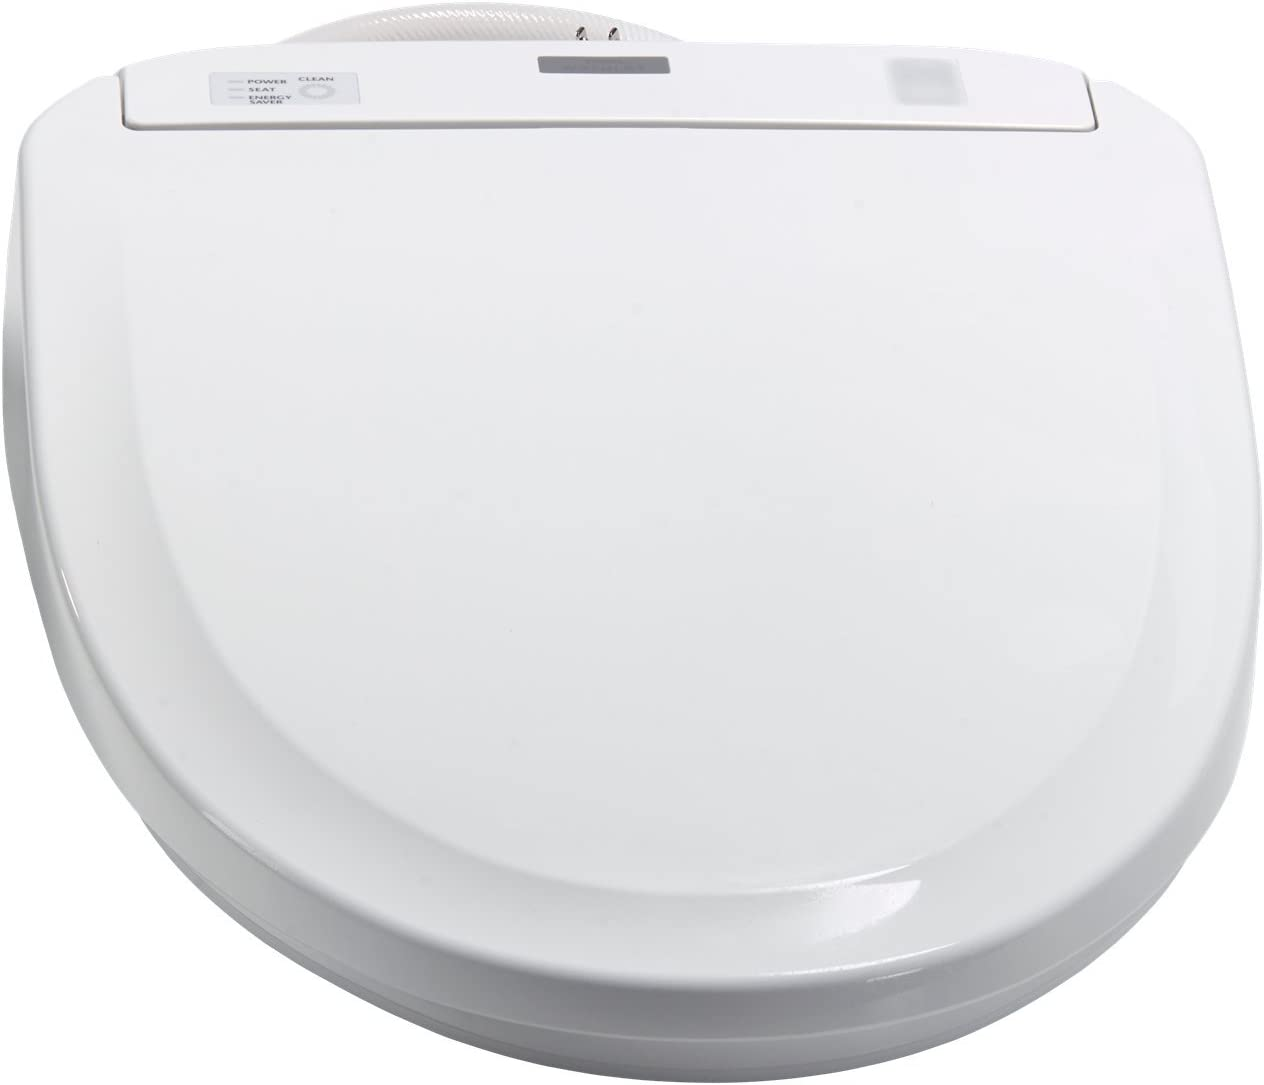 Toto Sw584 01 350e Washlet Electronic Bidet Toilet Seat With Auto Open And Close And Ewater Sanitization Elongated Cotton White